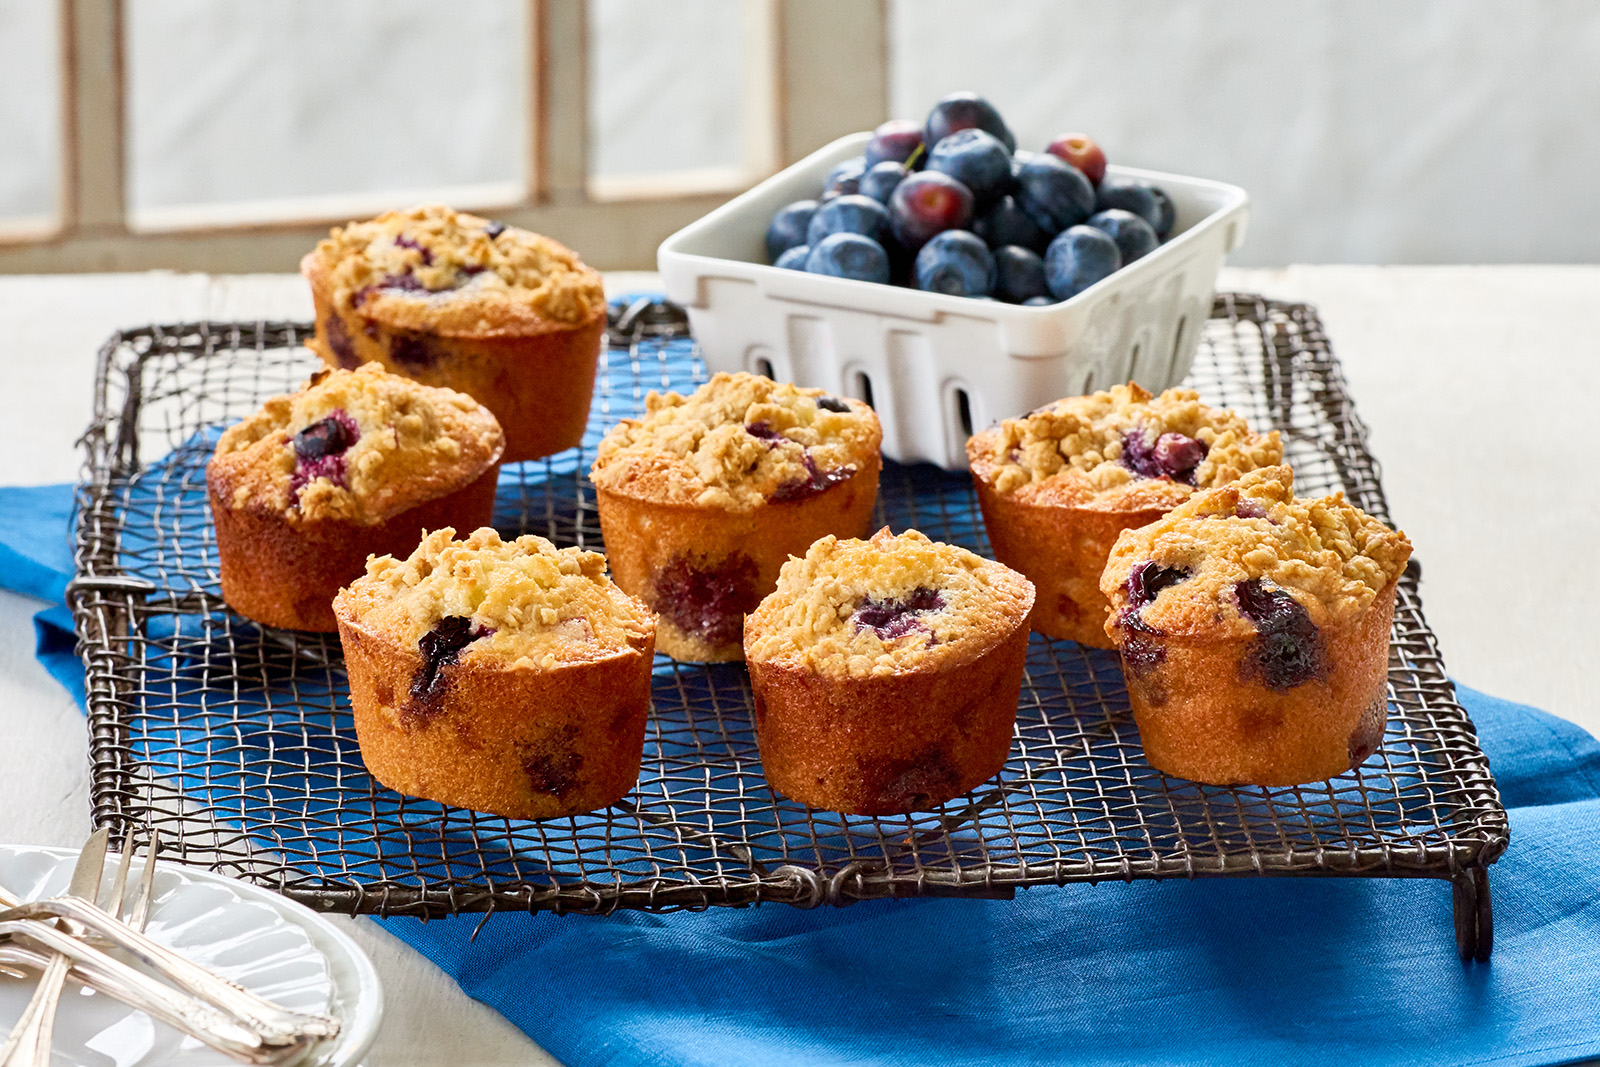 Spiced apple and blueberry crumble friands